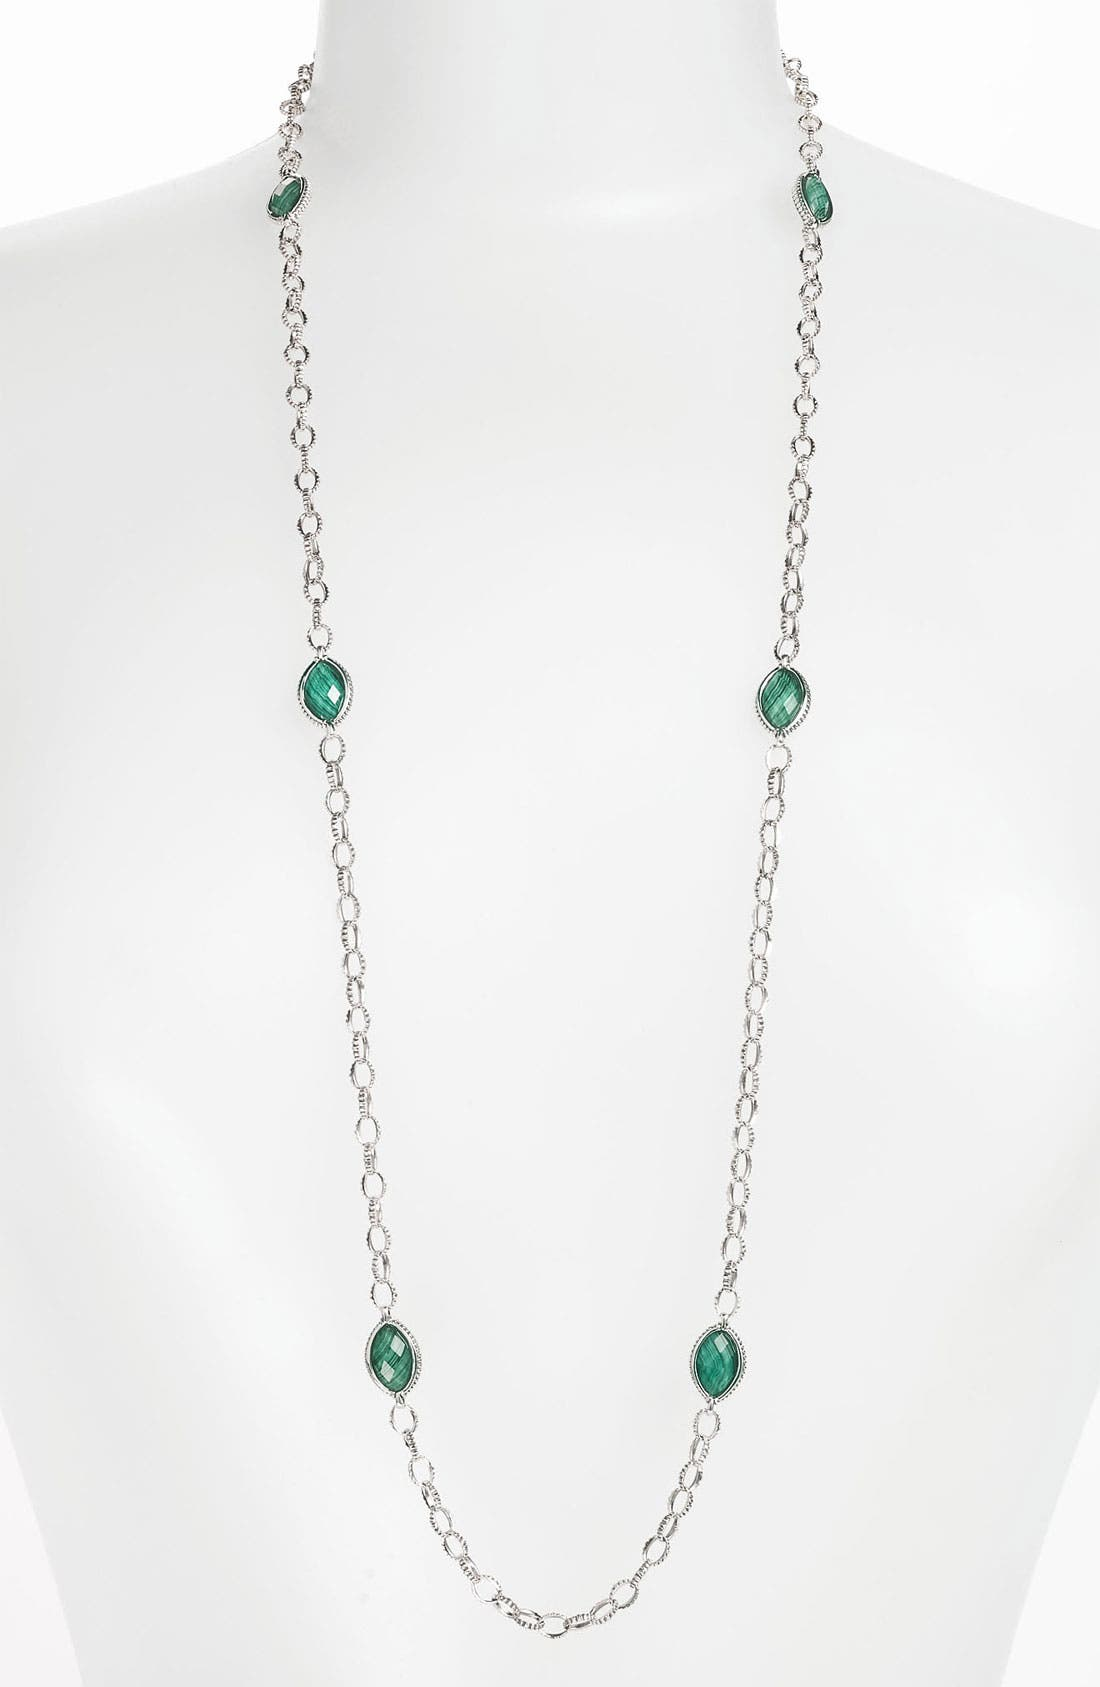 Main Image - LAGOS Long Station Necklace